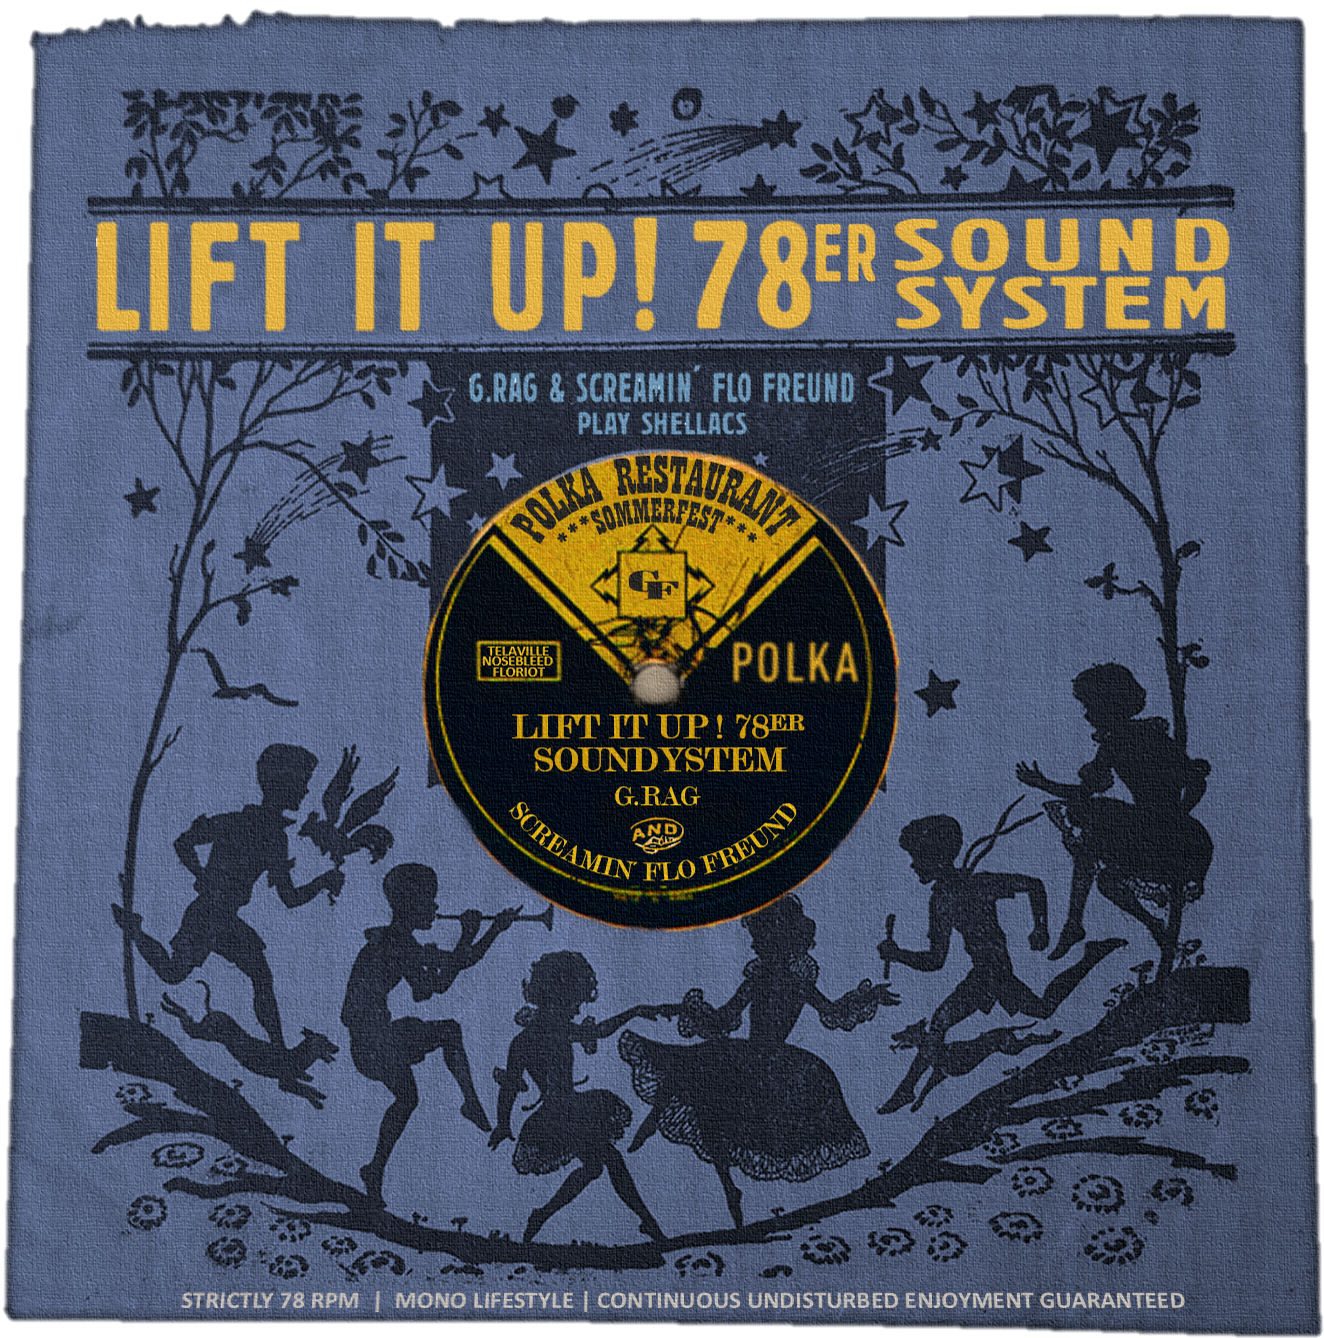 14. August: POLKA Sommerfest mit Lift it Up Soundsystem + Flo Keller